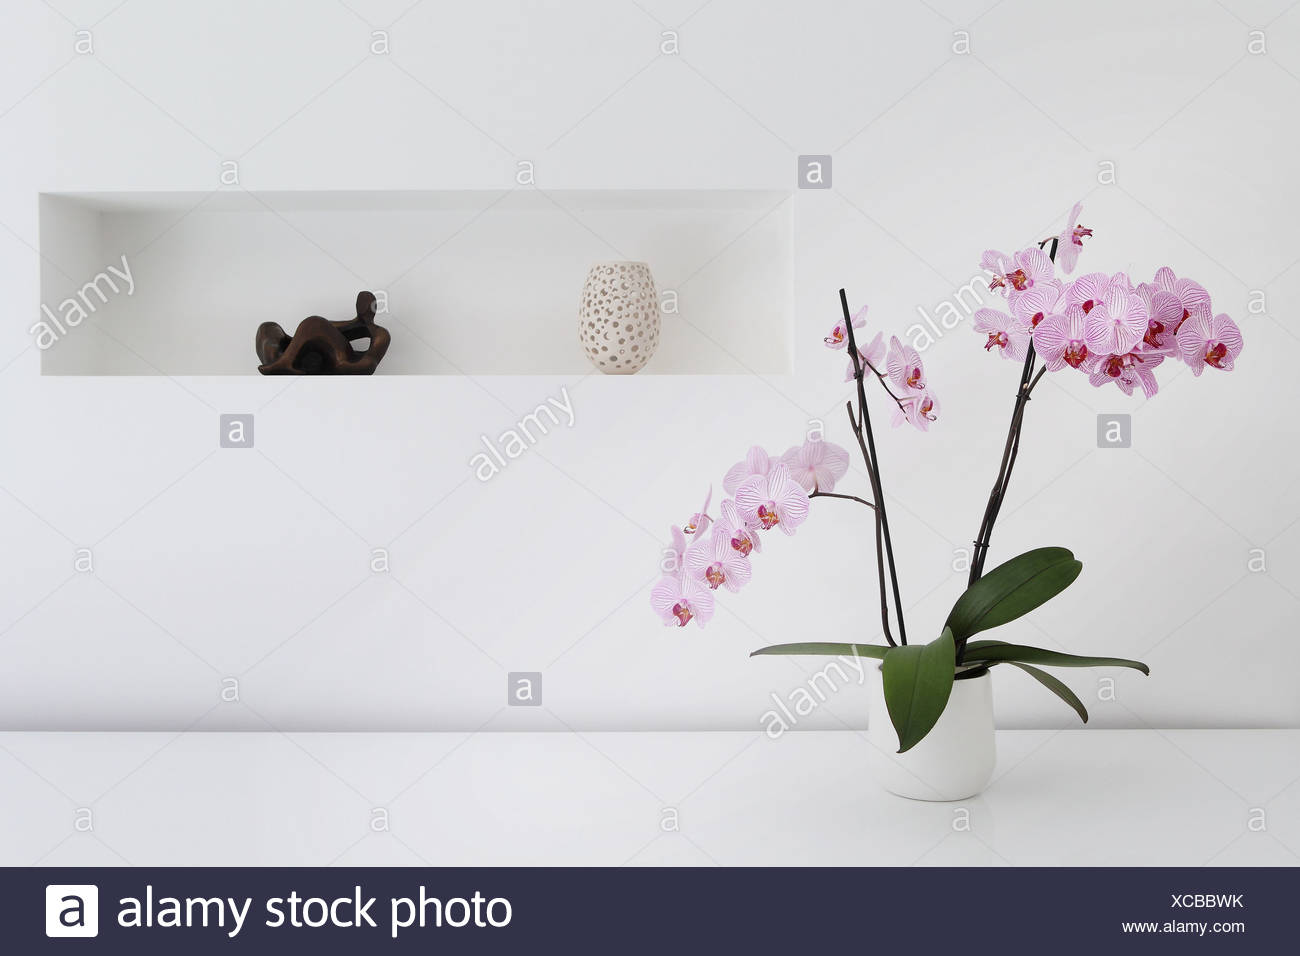 Pink orchid plant and ornaments in room - Stock Image